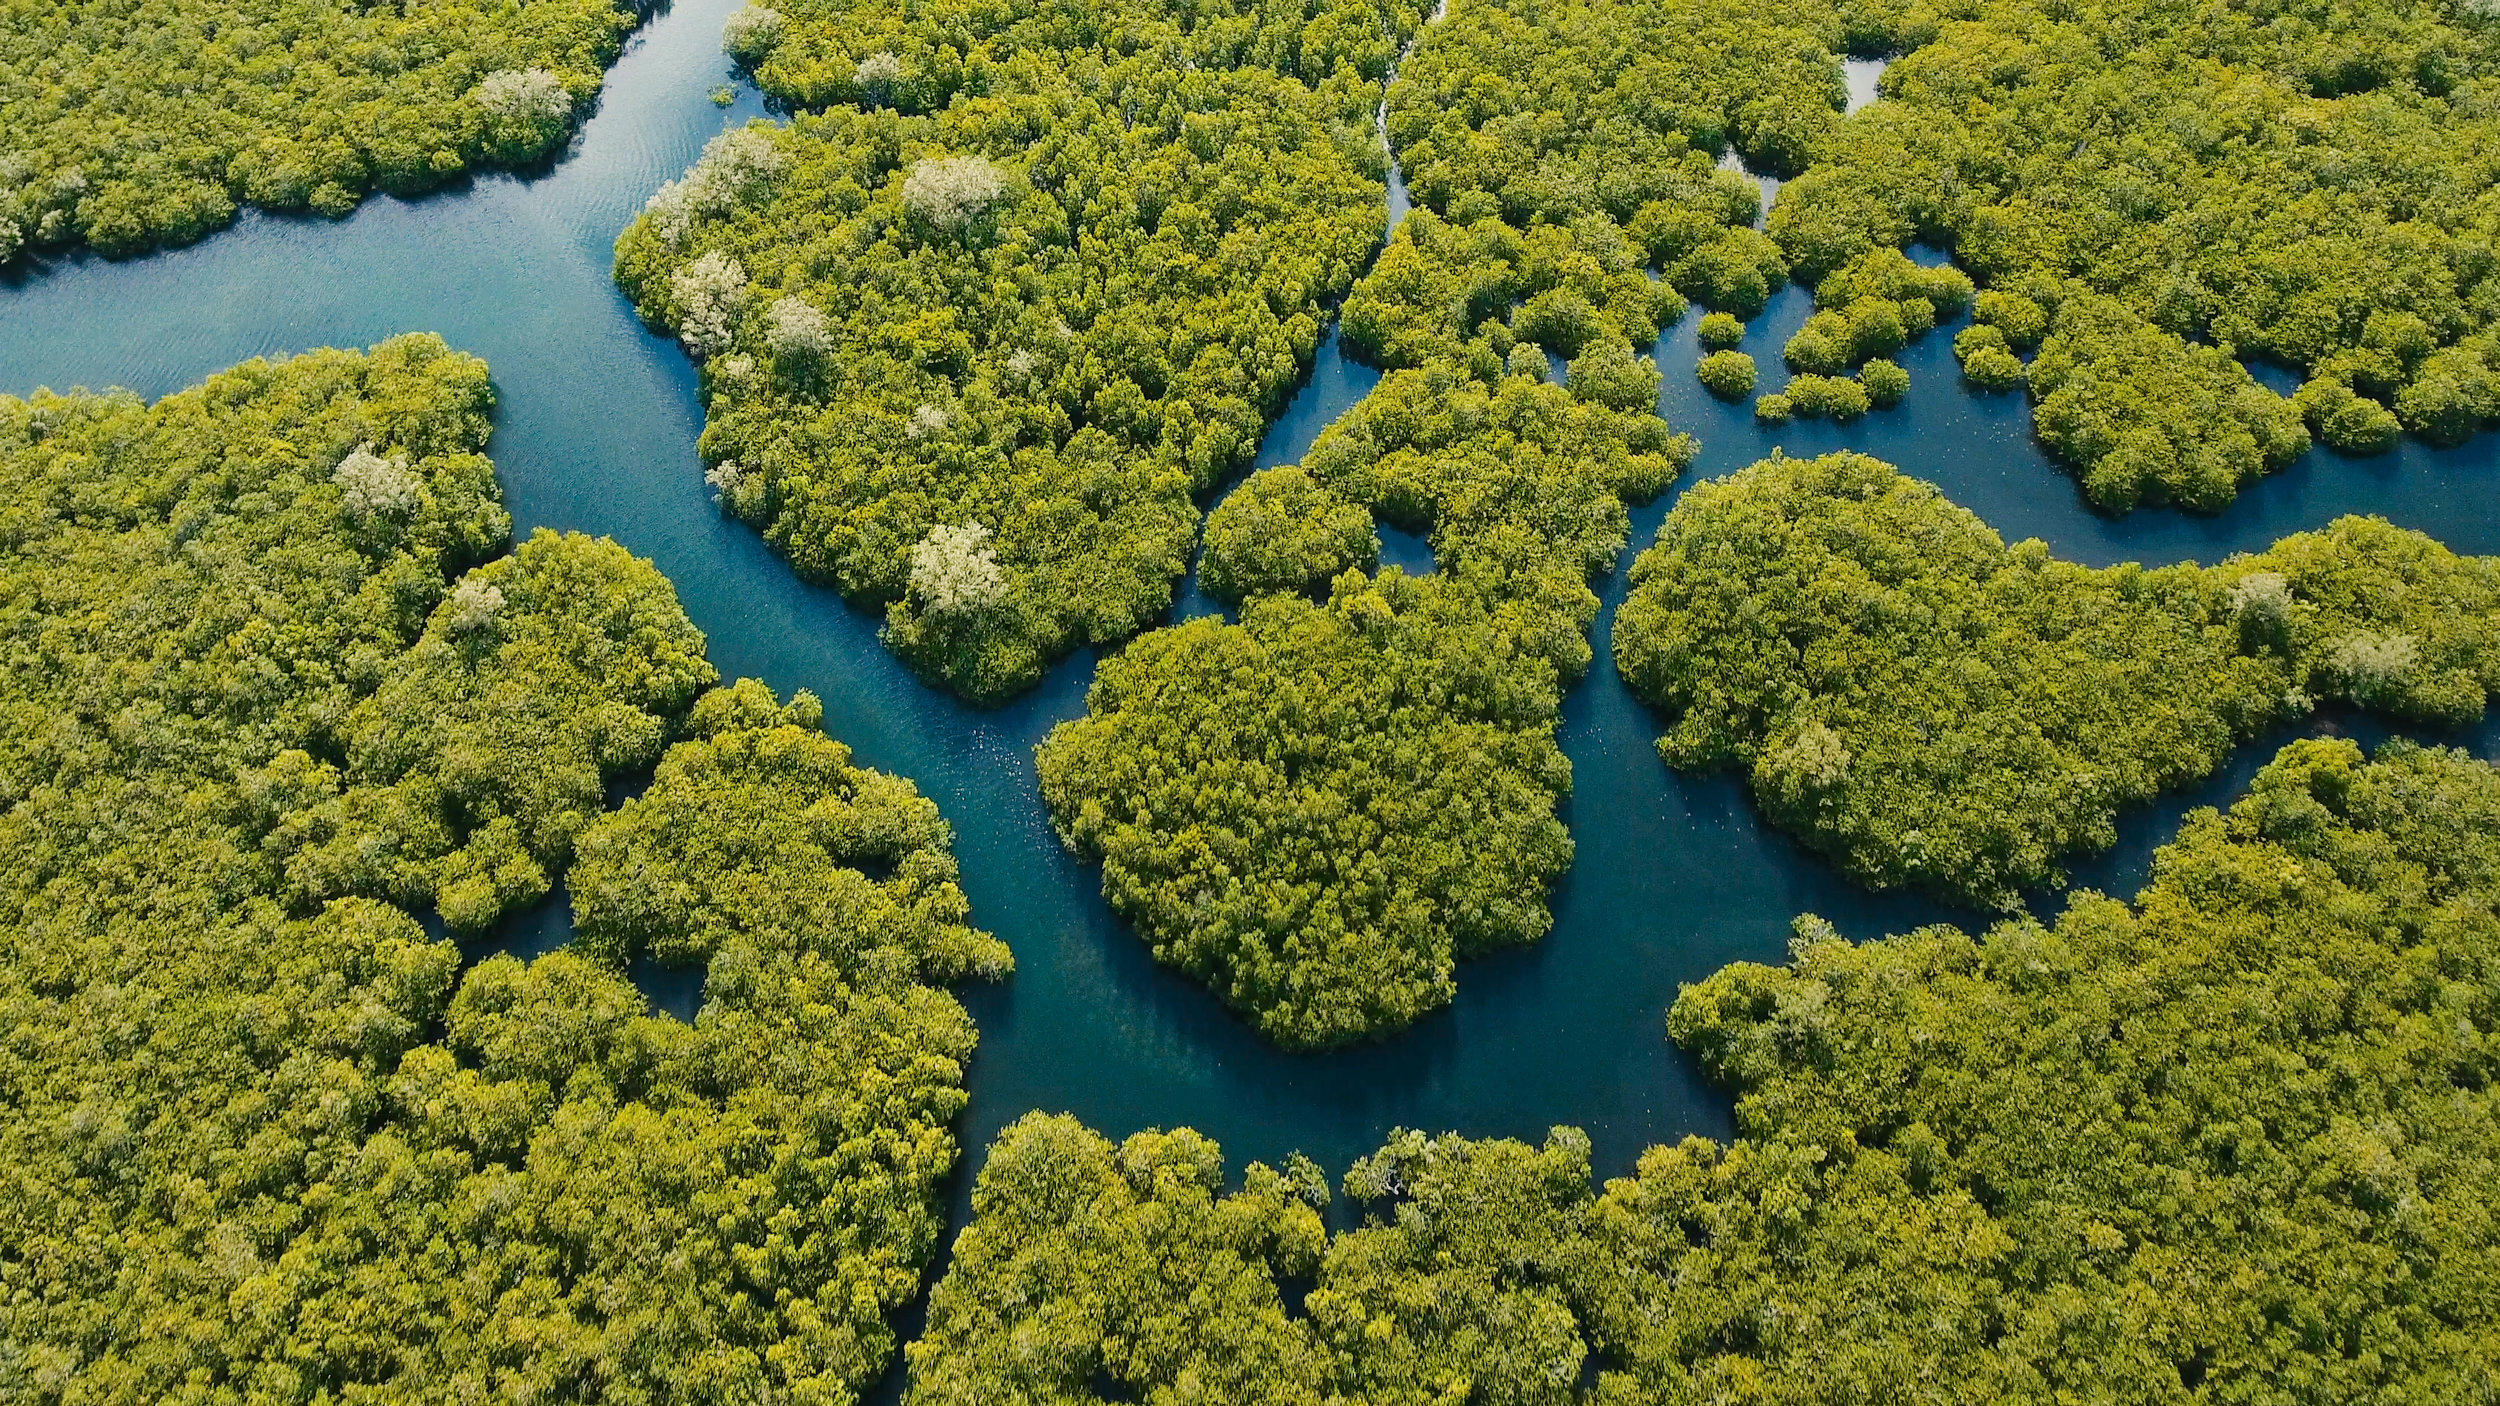 Pictured:  Aerial view of mangrove forest and river on the Siargao island, Philippines.